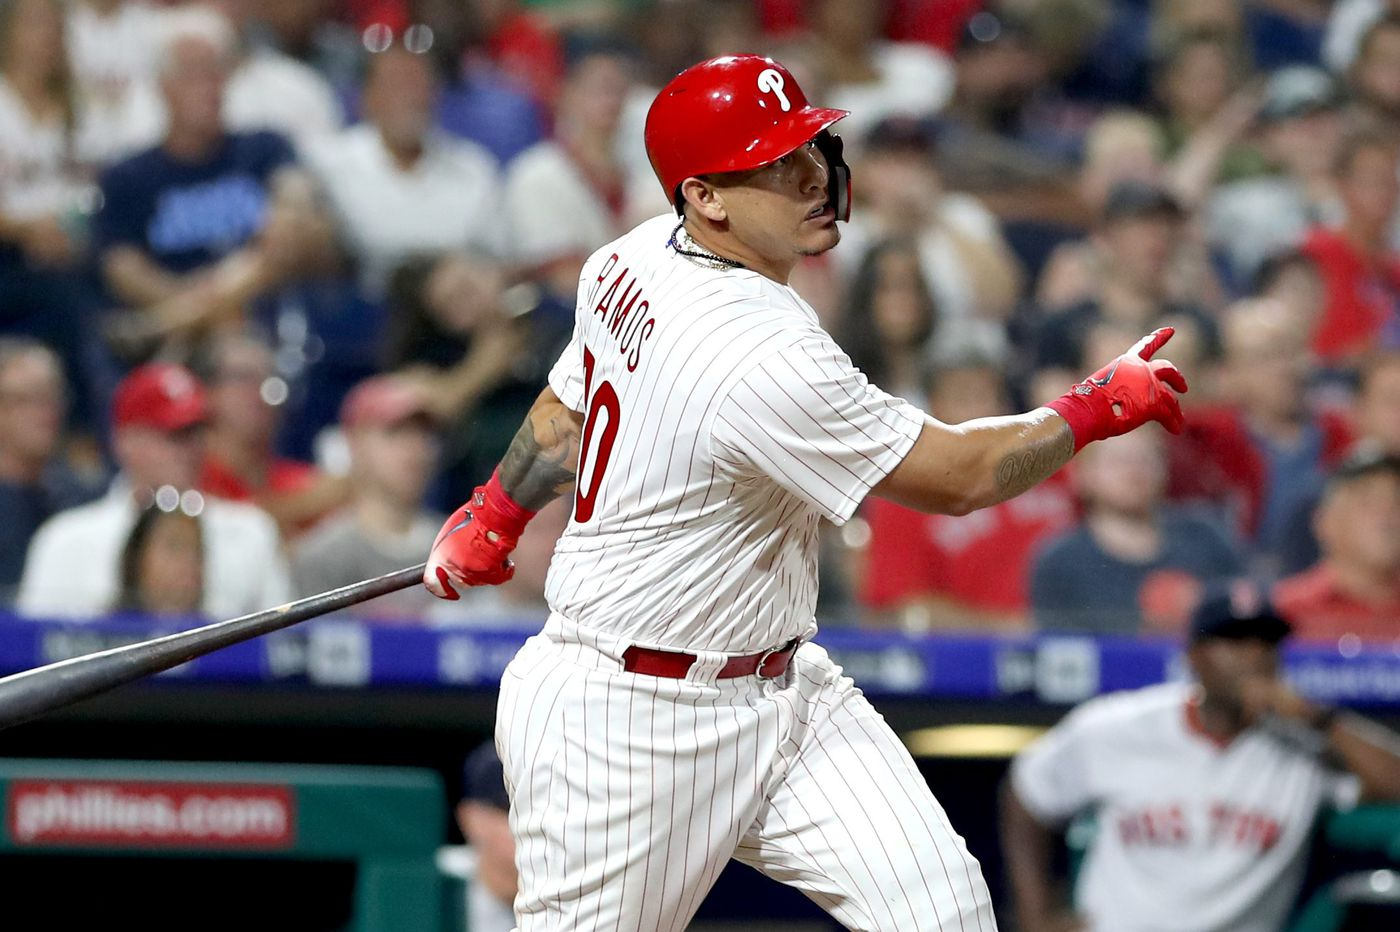 Wilson Ramos is Phillies' hottest hitter, but his health comes first